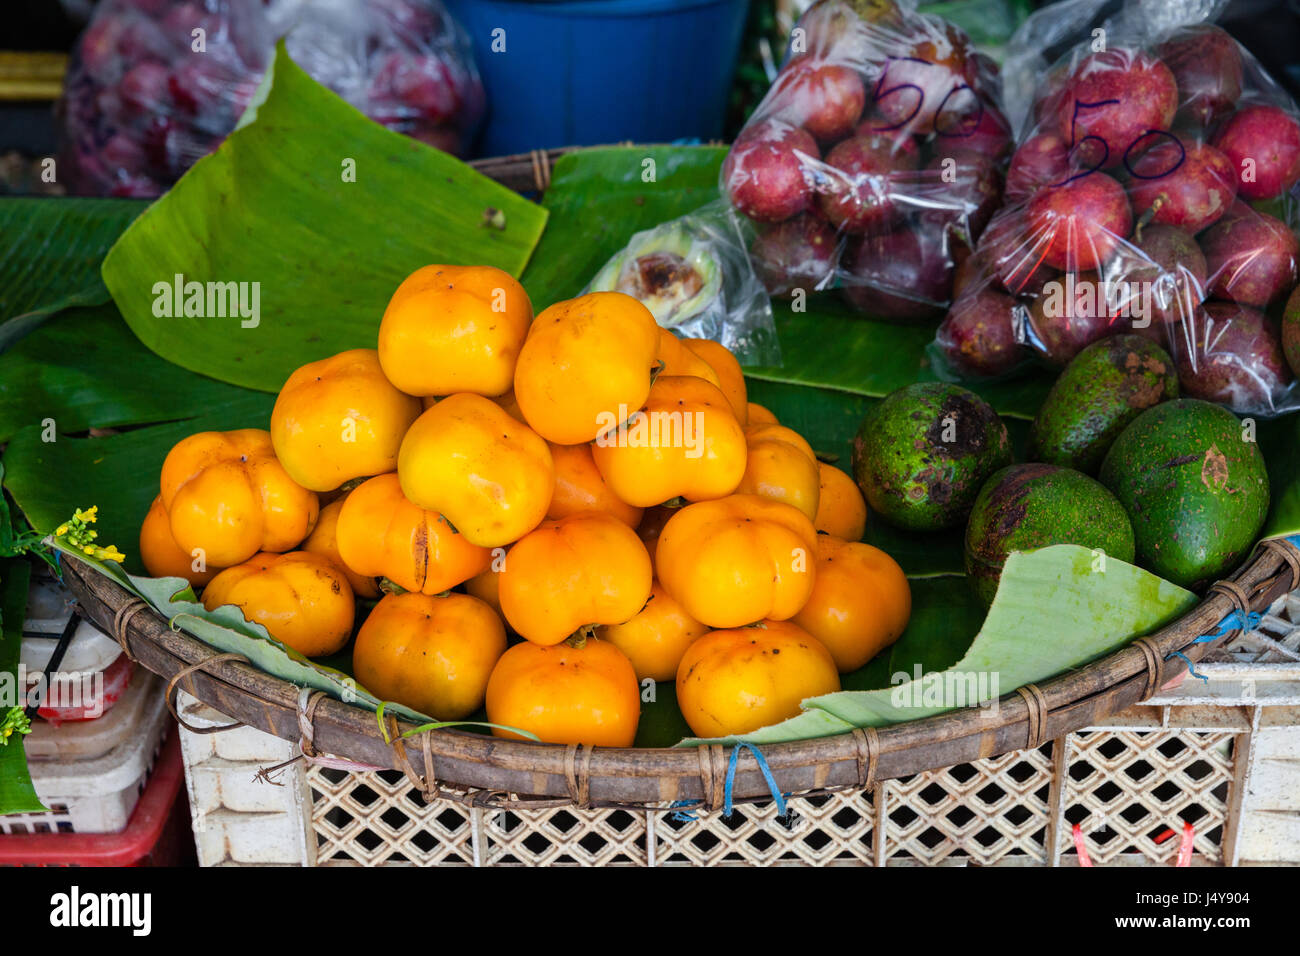 Fruits at the Chian Mai fruits market. Thailand - Stock Image